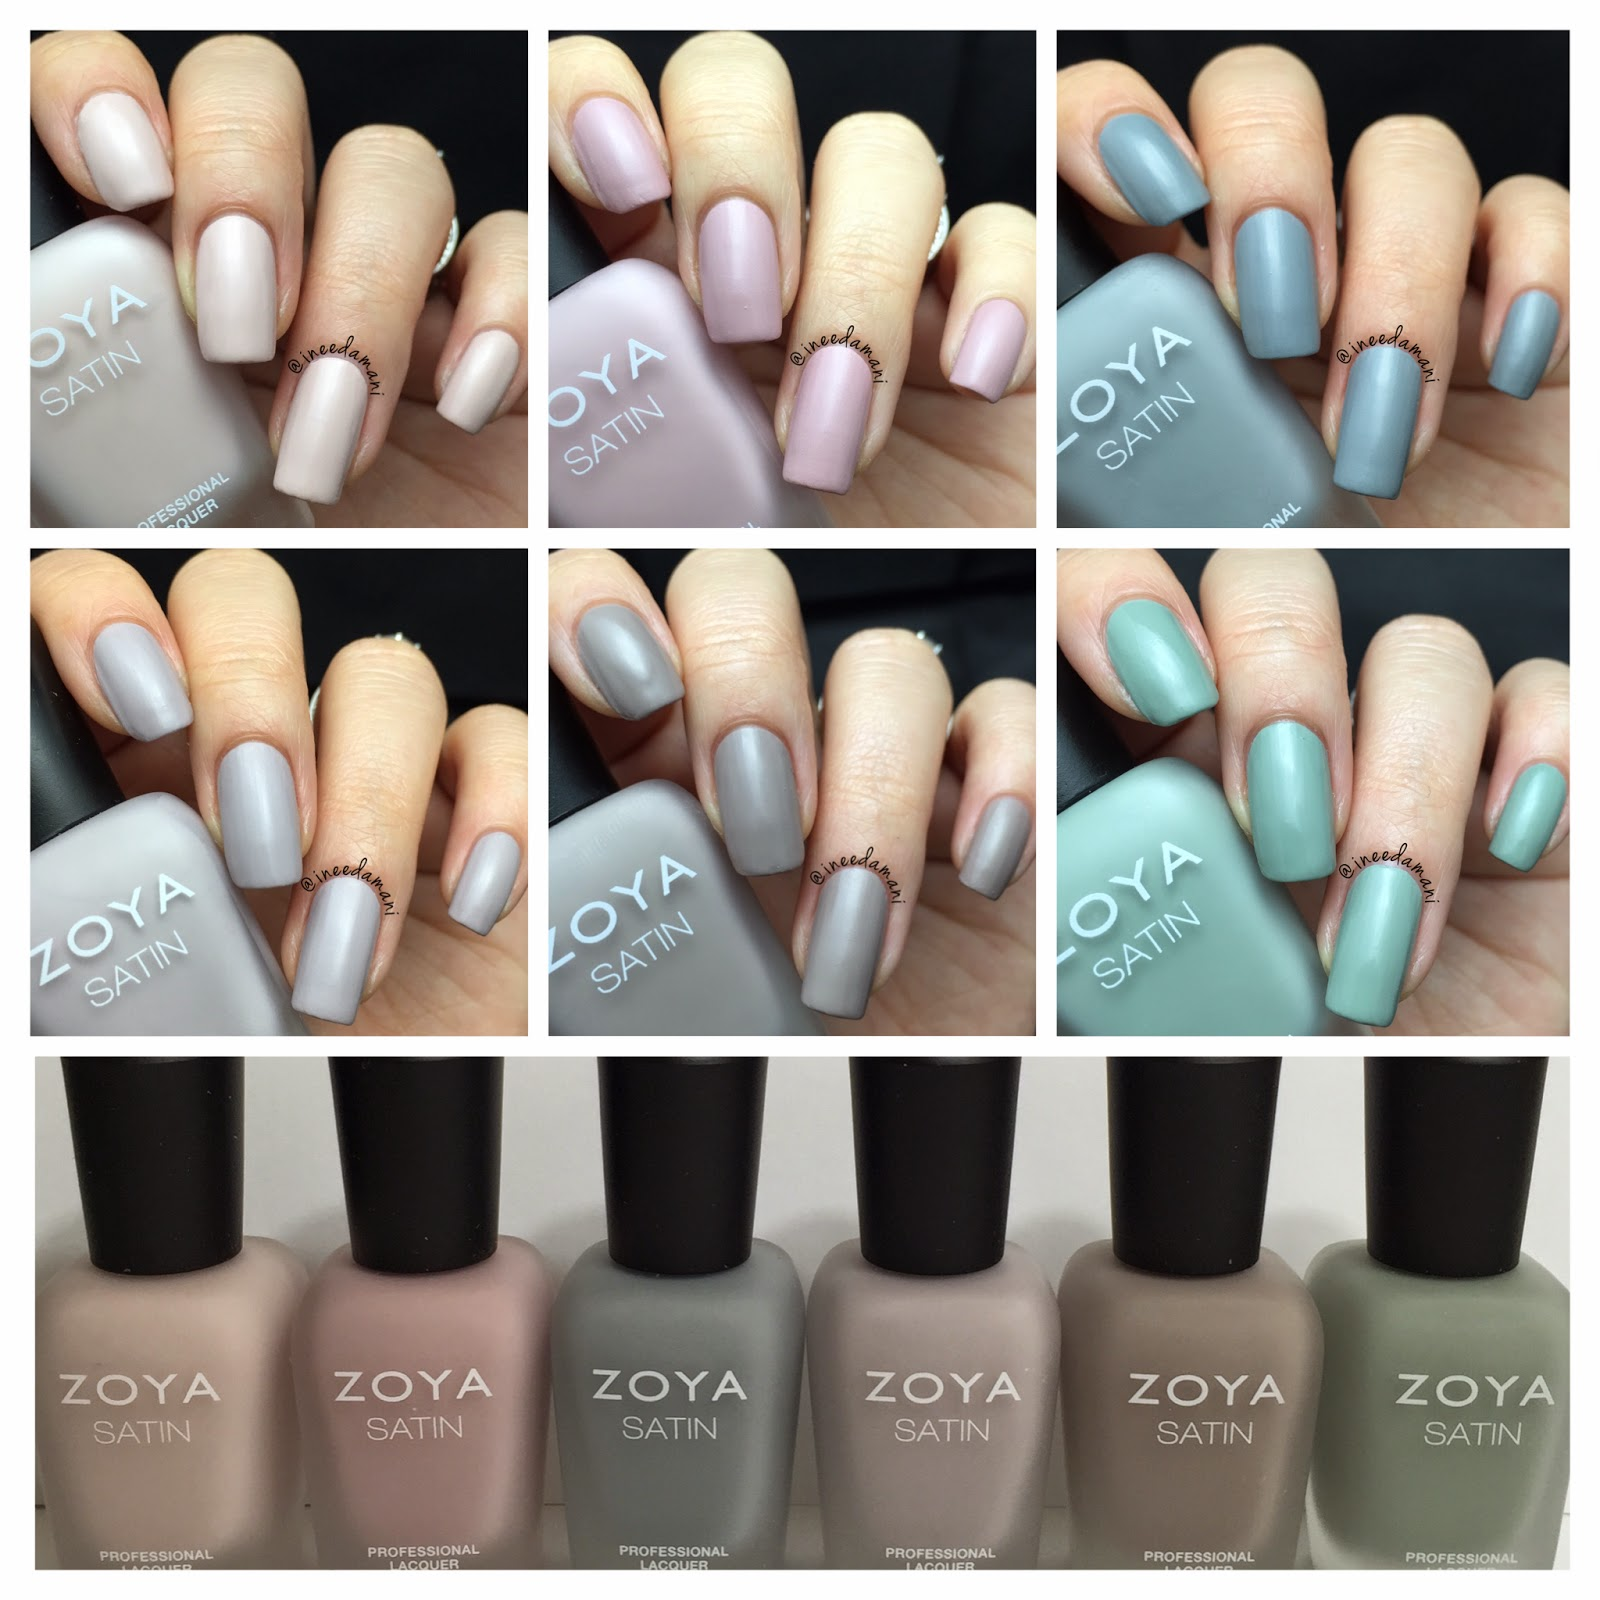 zoya naturel satin